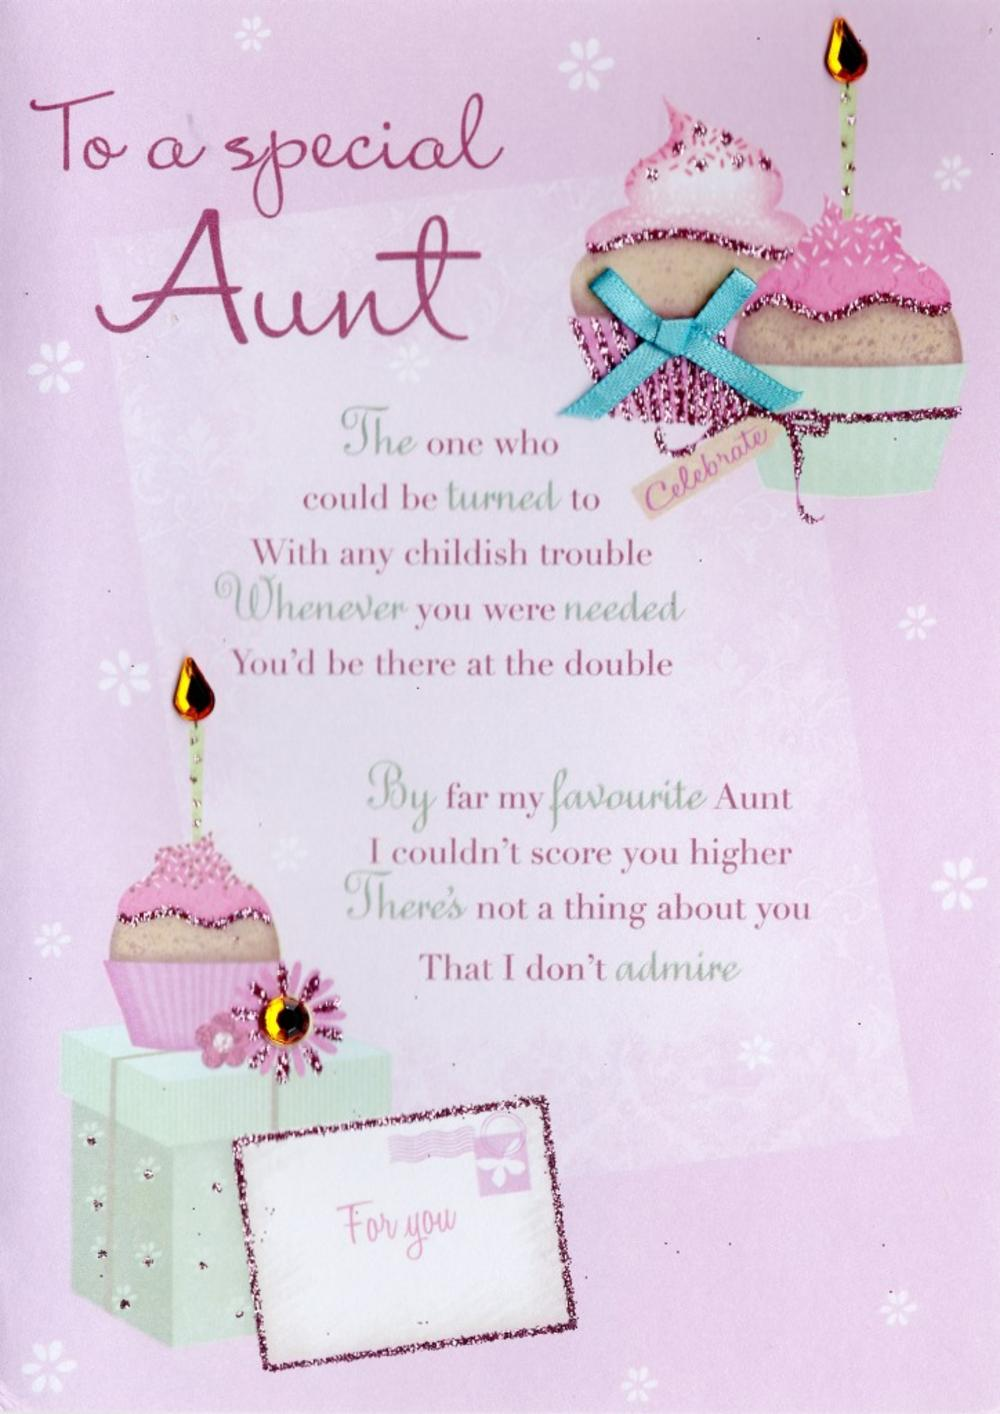 Special aunt birthday greeting card cards love kates special aunt birthday greeting card m4hsunfo